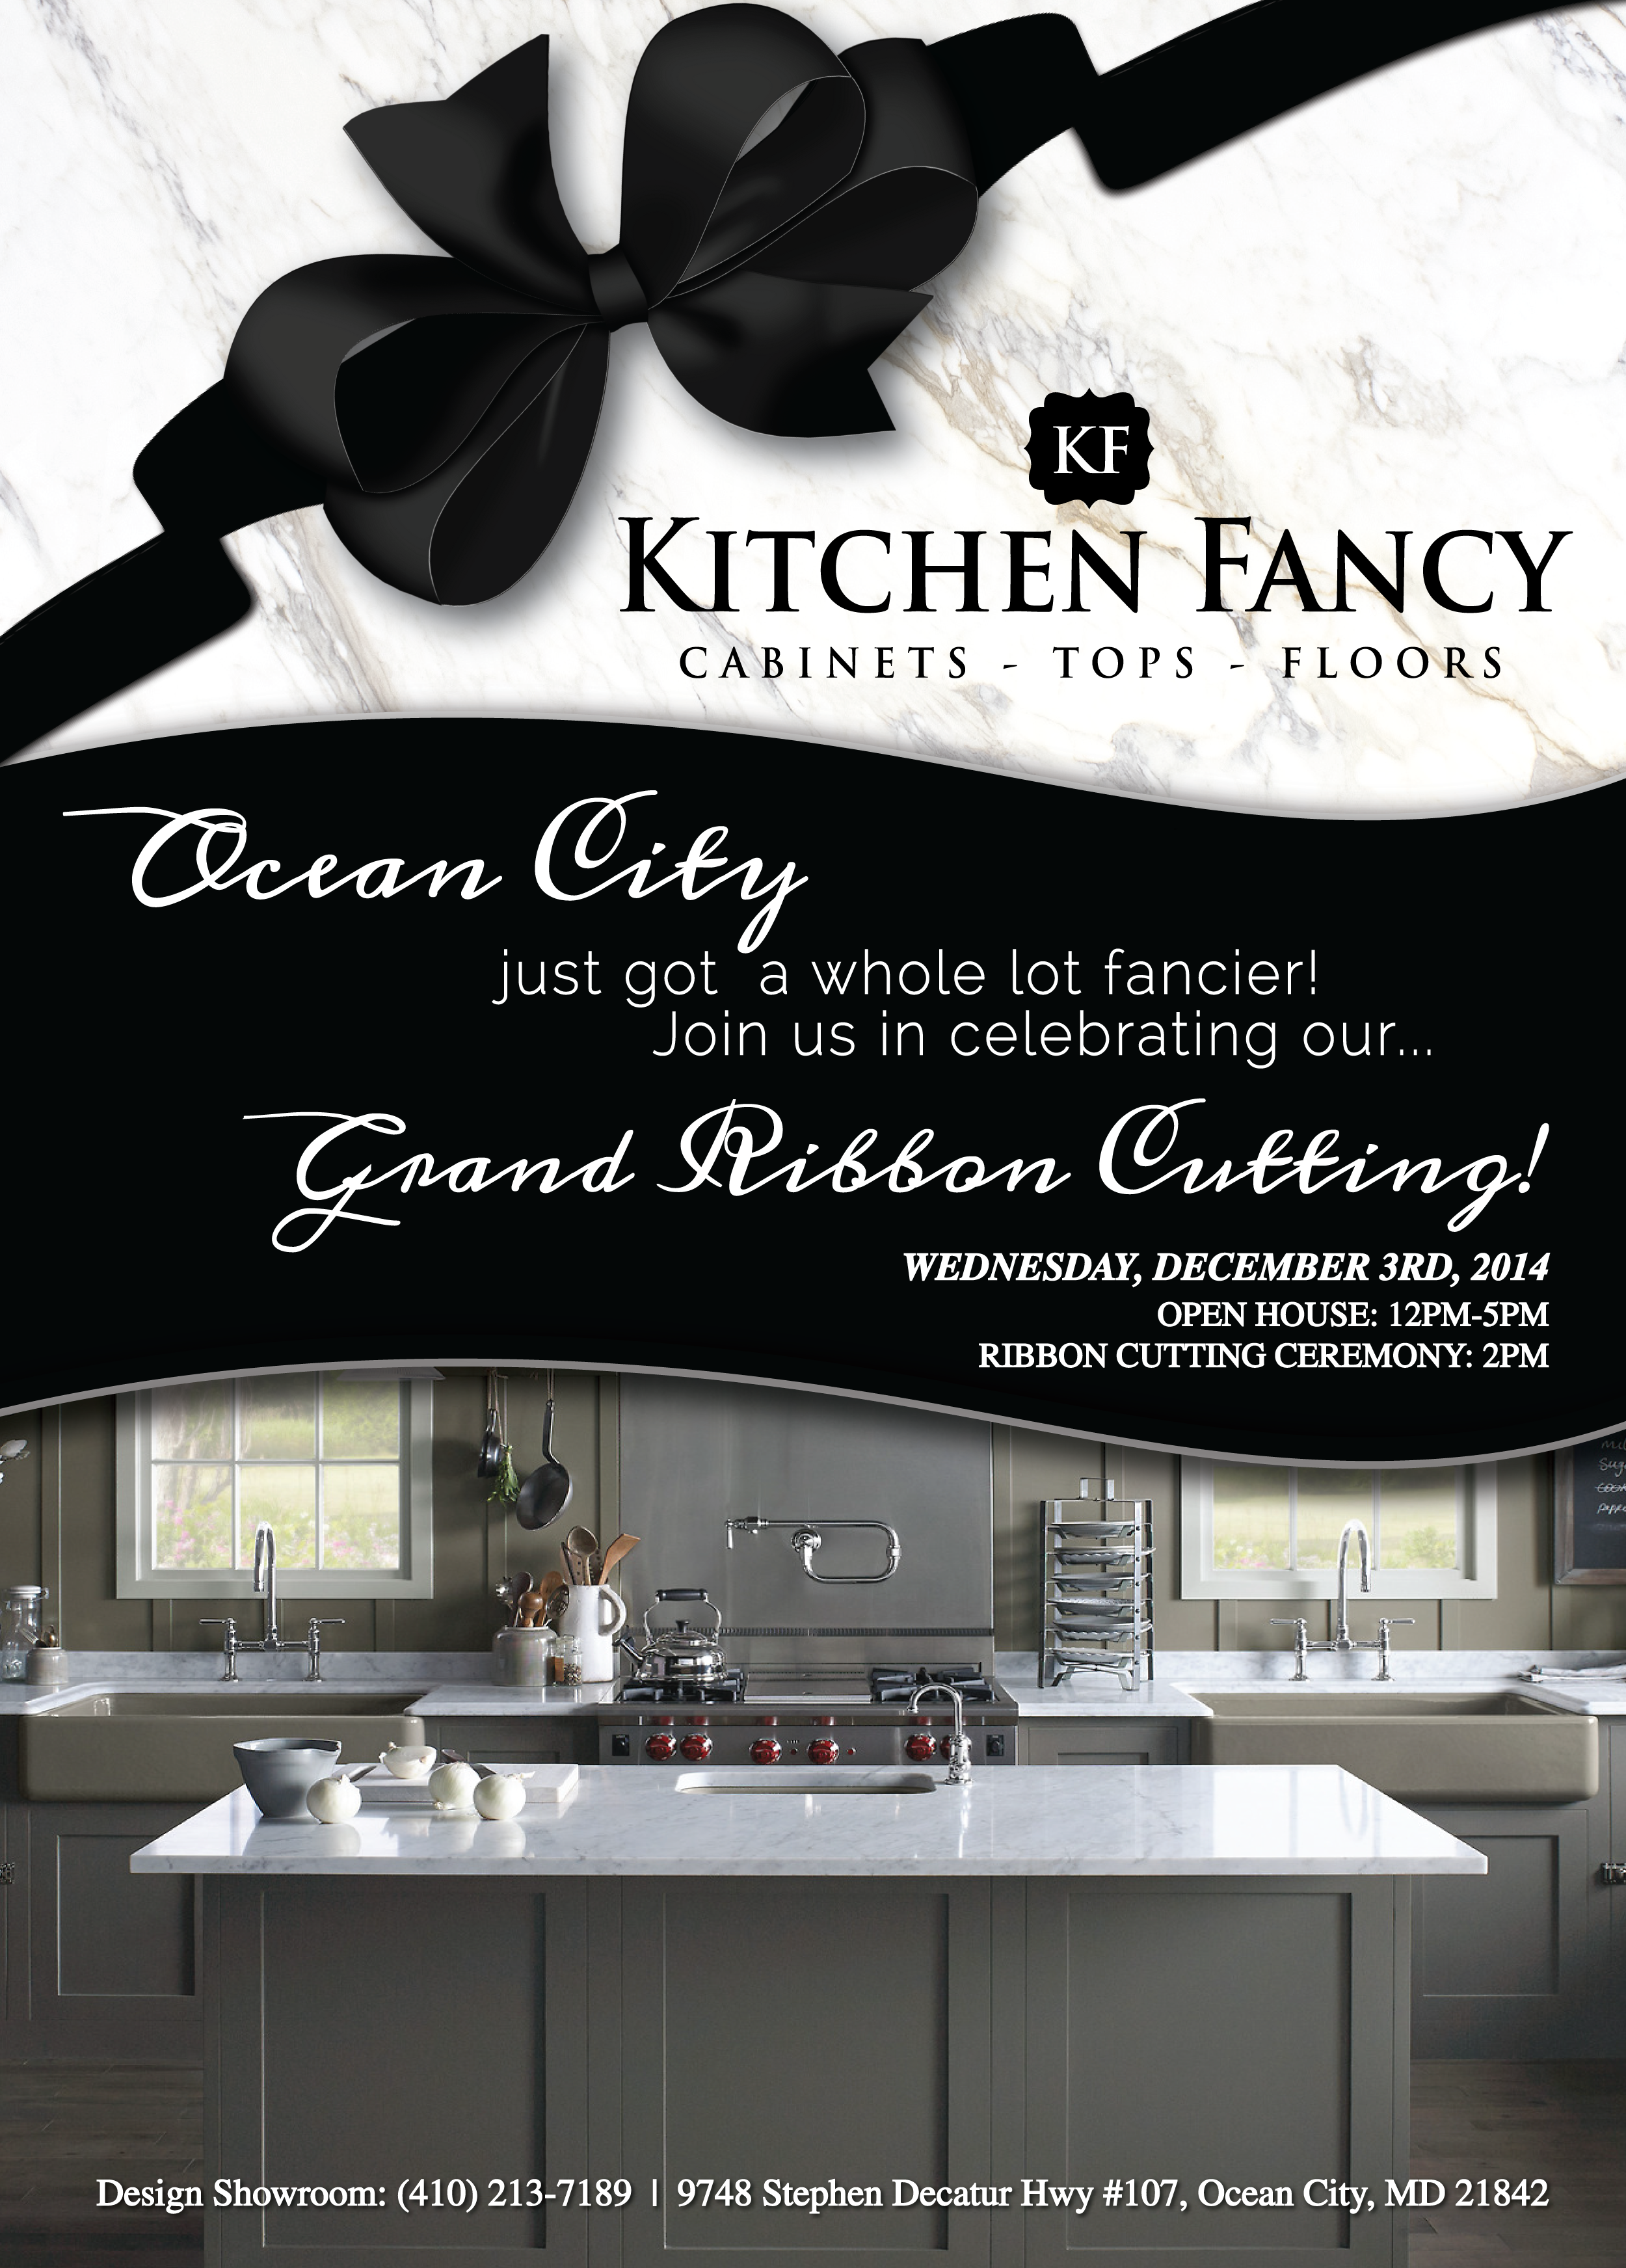 Kitchen Fancy | Kitchen & Bath Showroom | Ocean City, MD ...